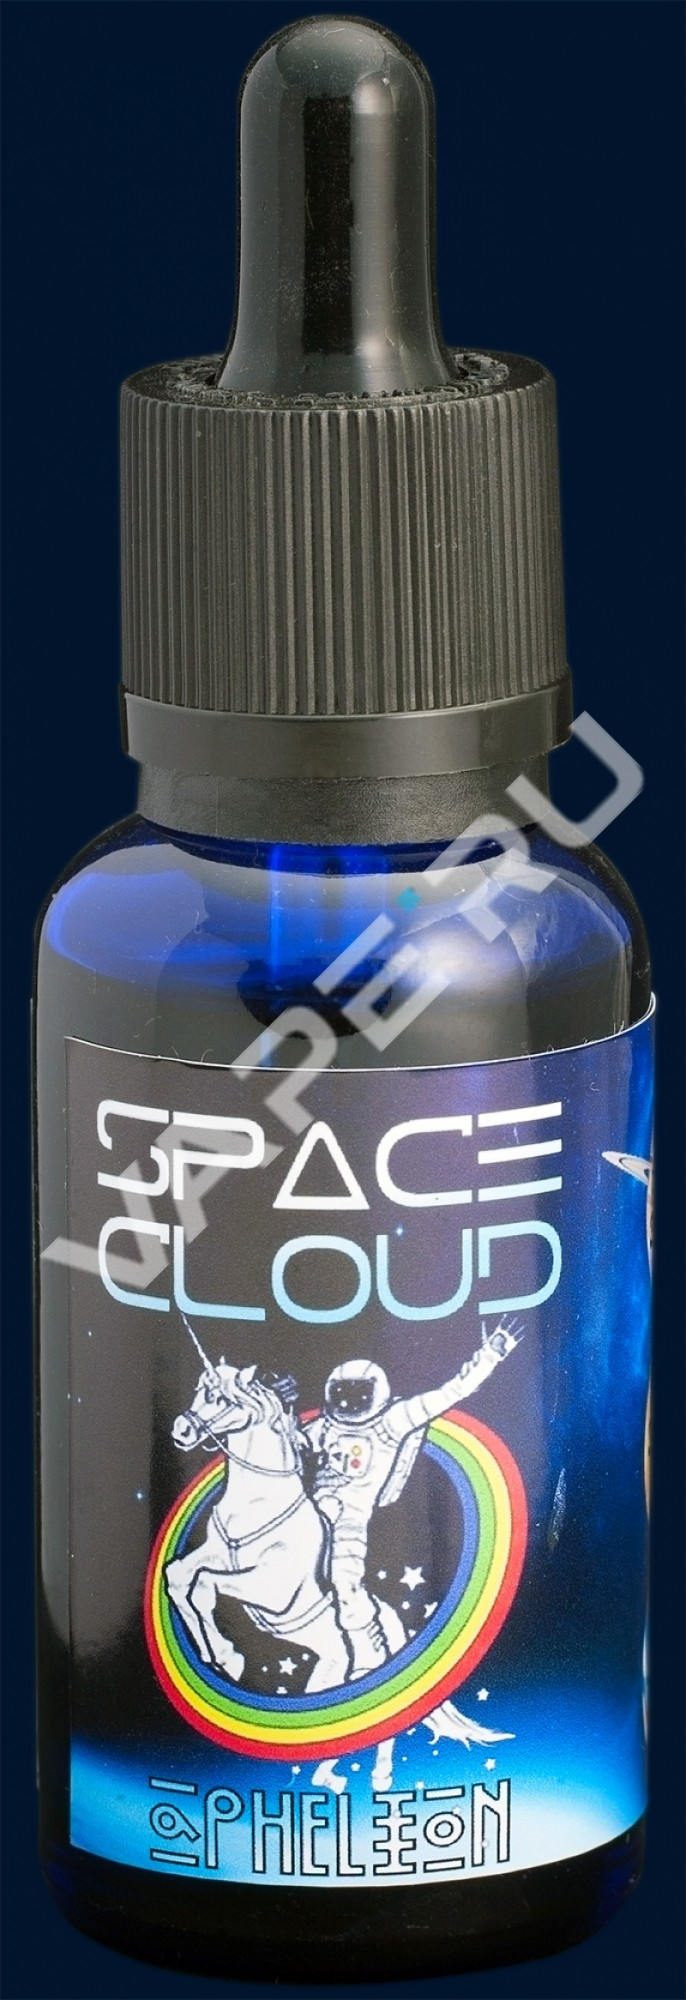 Space Cloud, Aphelion